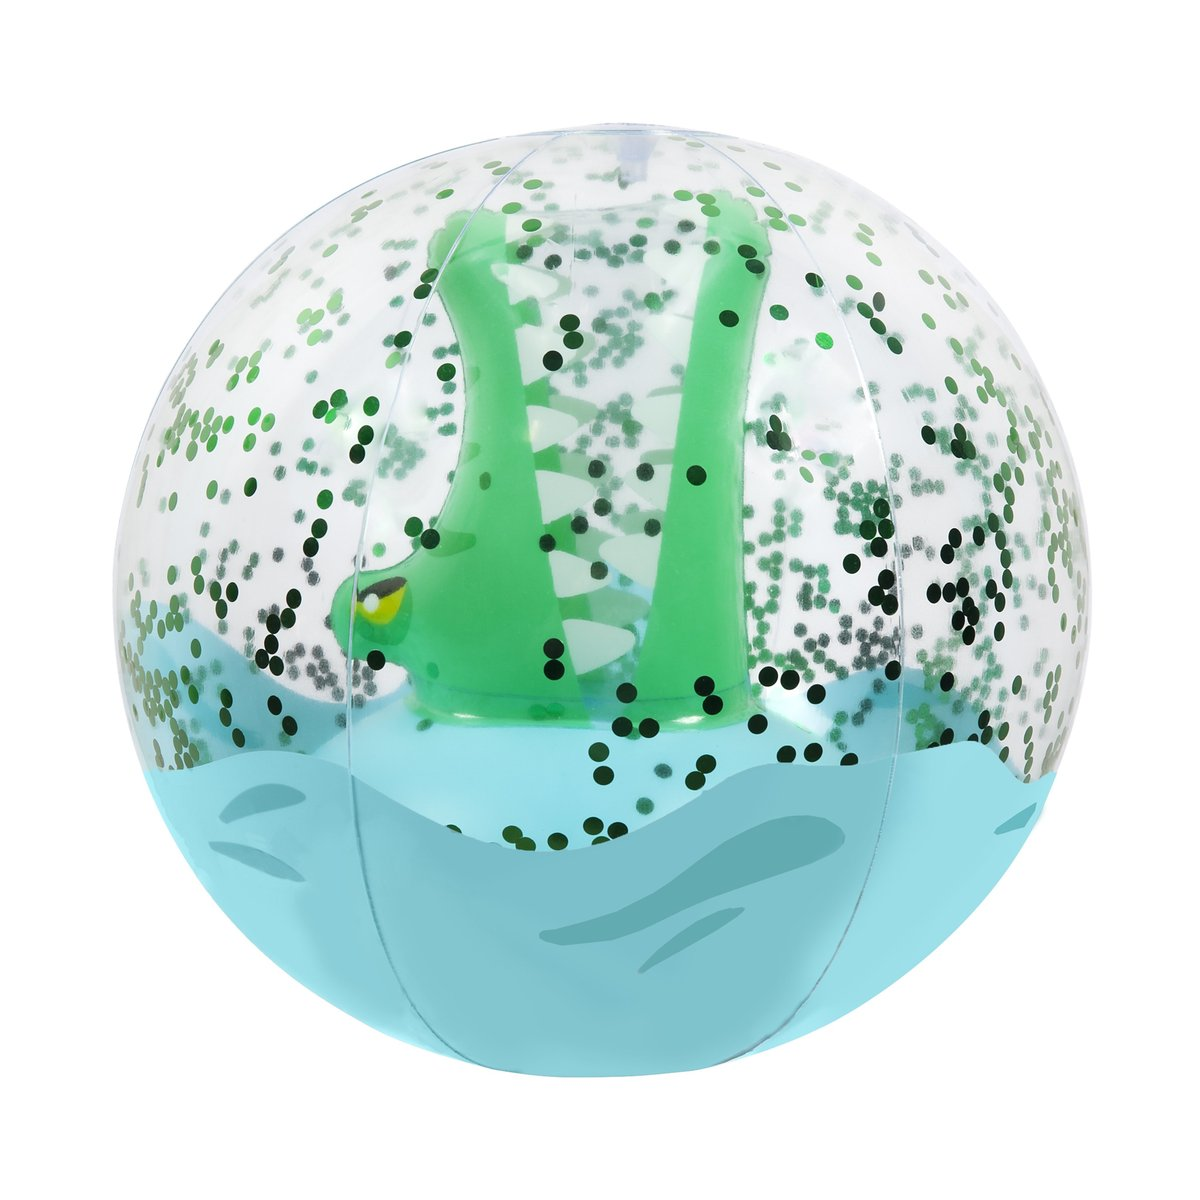 SUNNYLIFE INFLATABLE BEACH BALL | 3D CROC